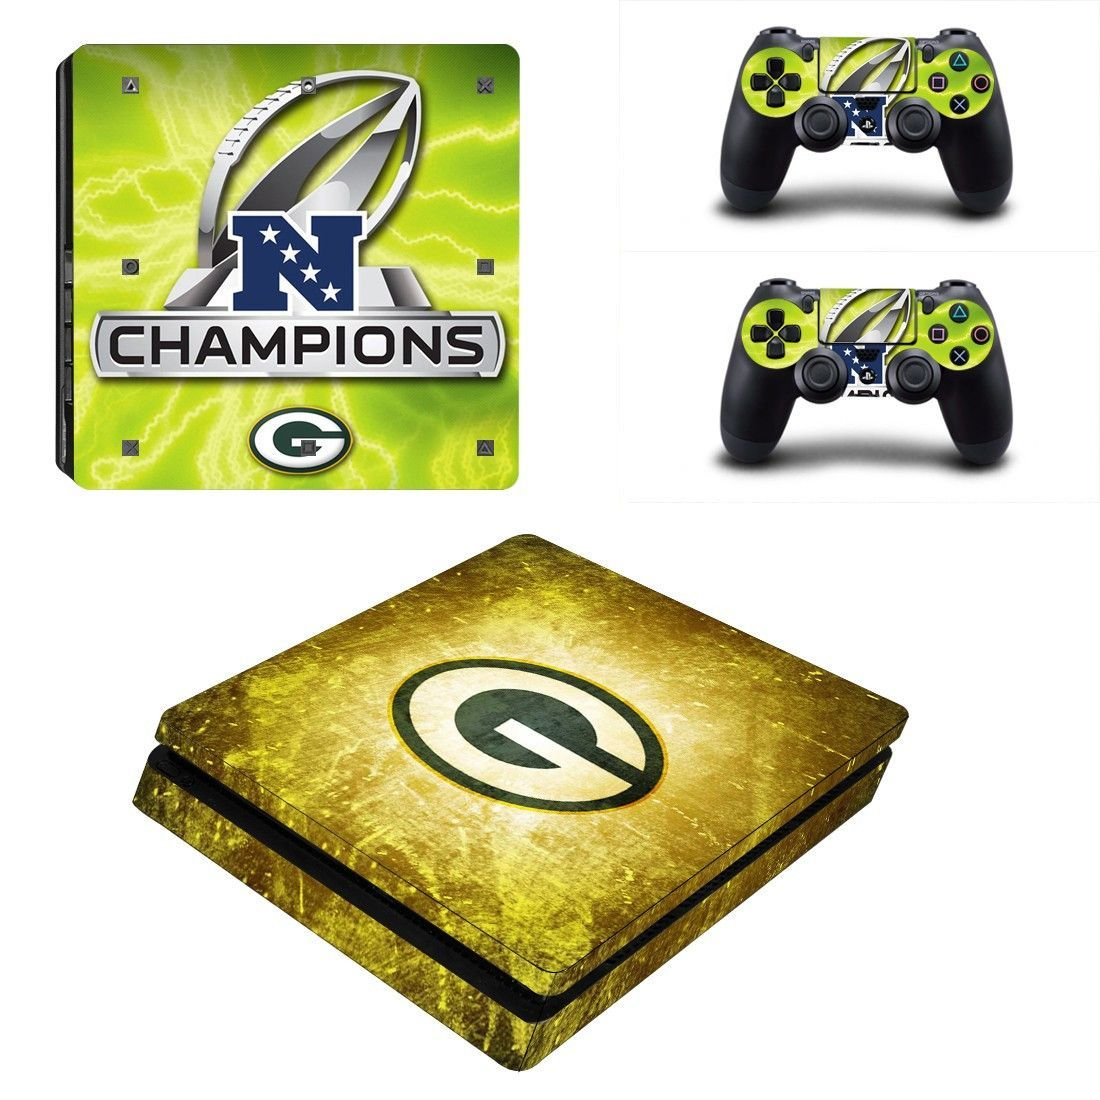 Nfc Champions Logo Ps4 Slim Edition Skin Decal For Console And 2 Controllers Ps4 Slim Ps4 Slim Console Ps4 Pro Console